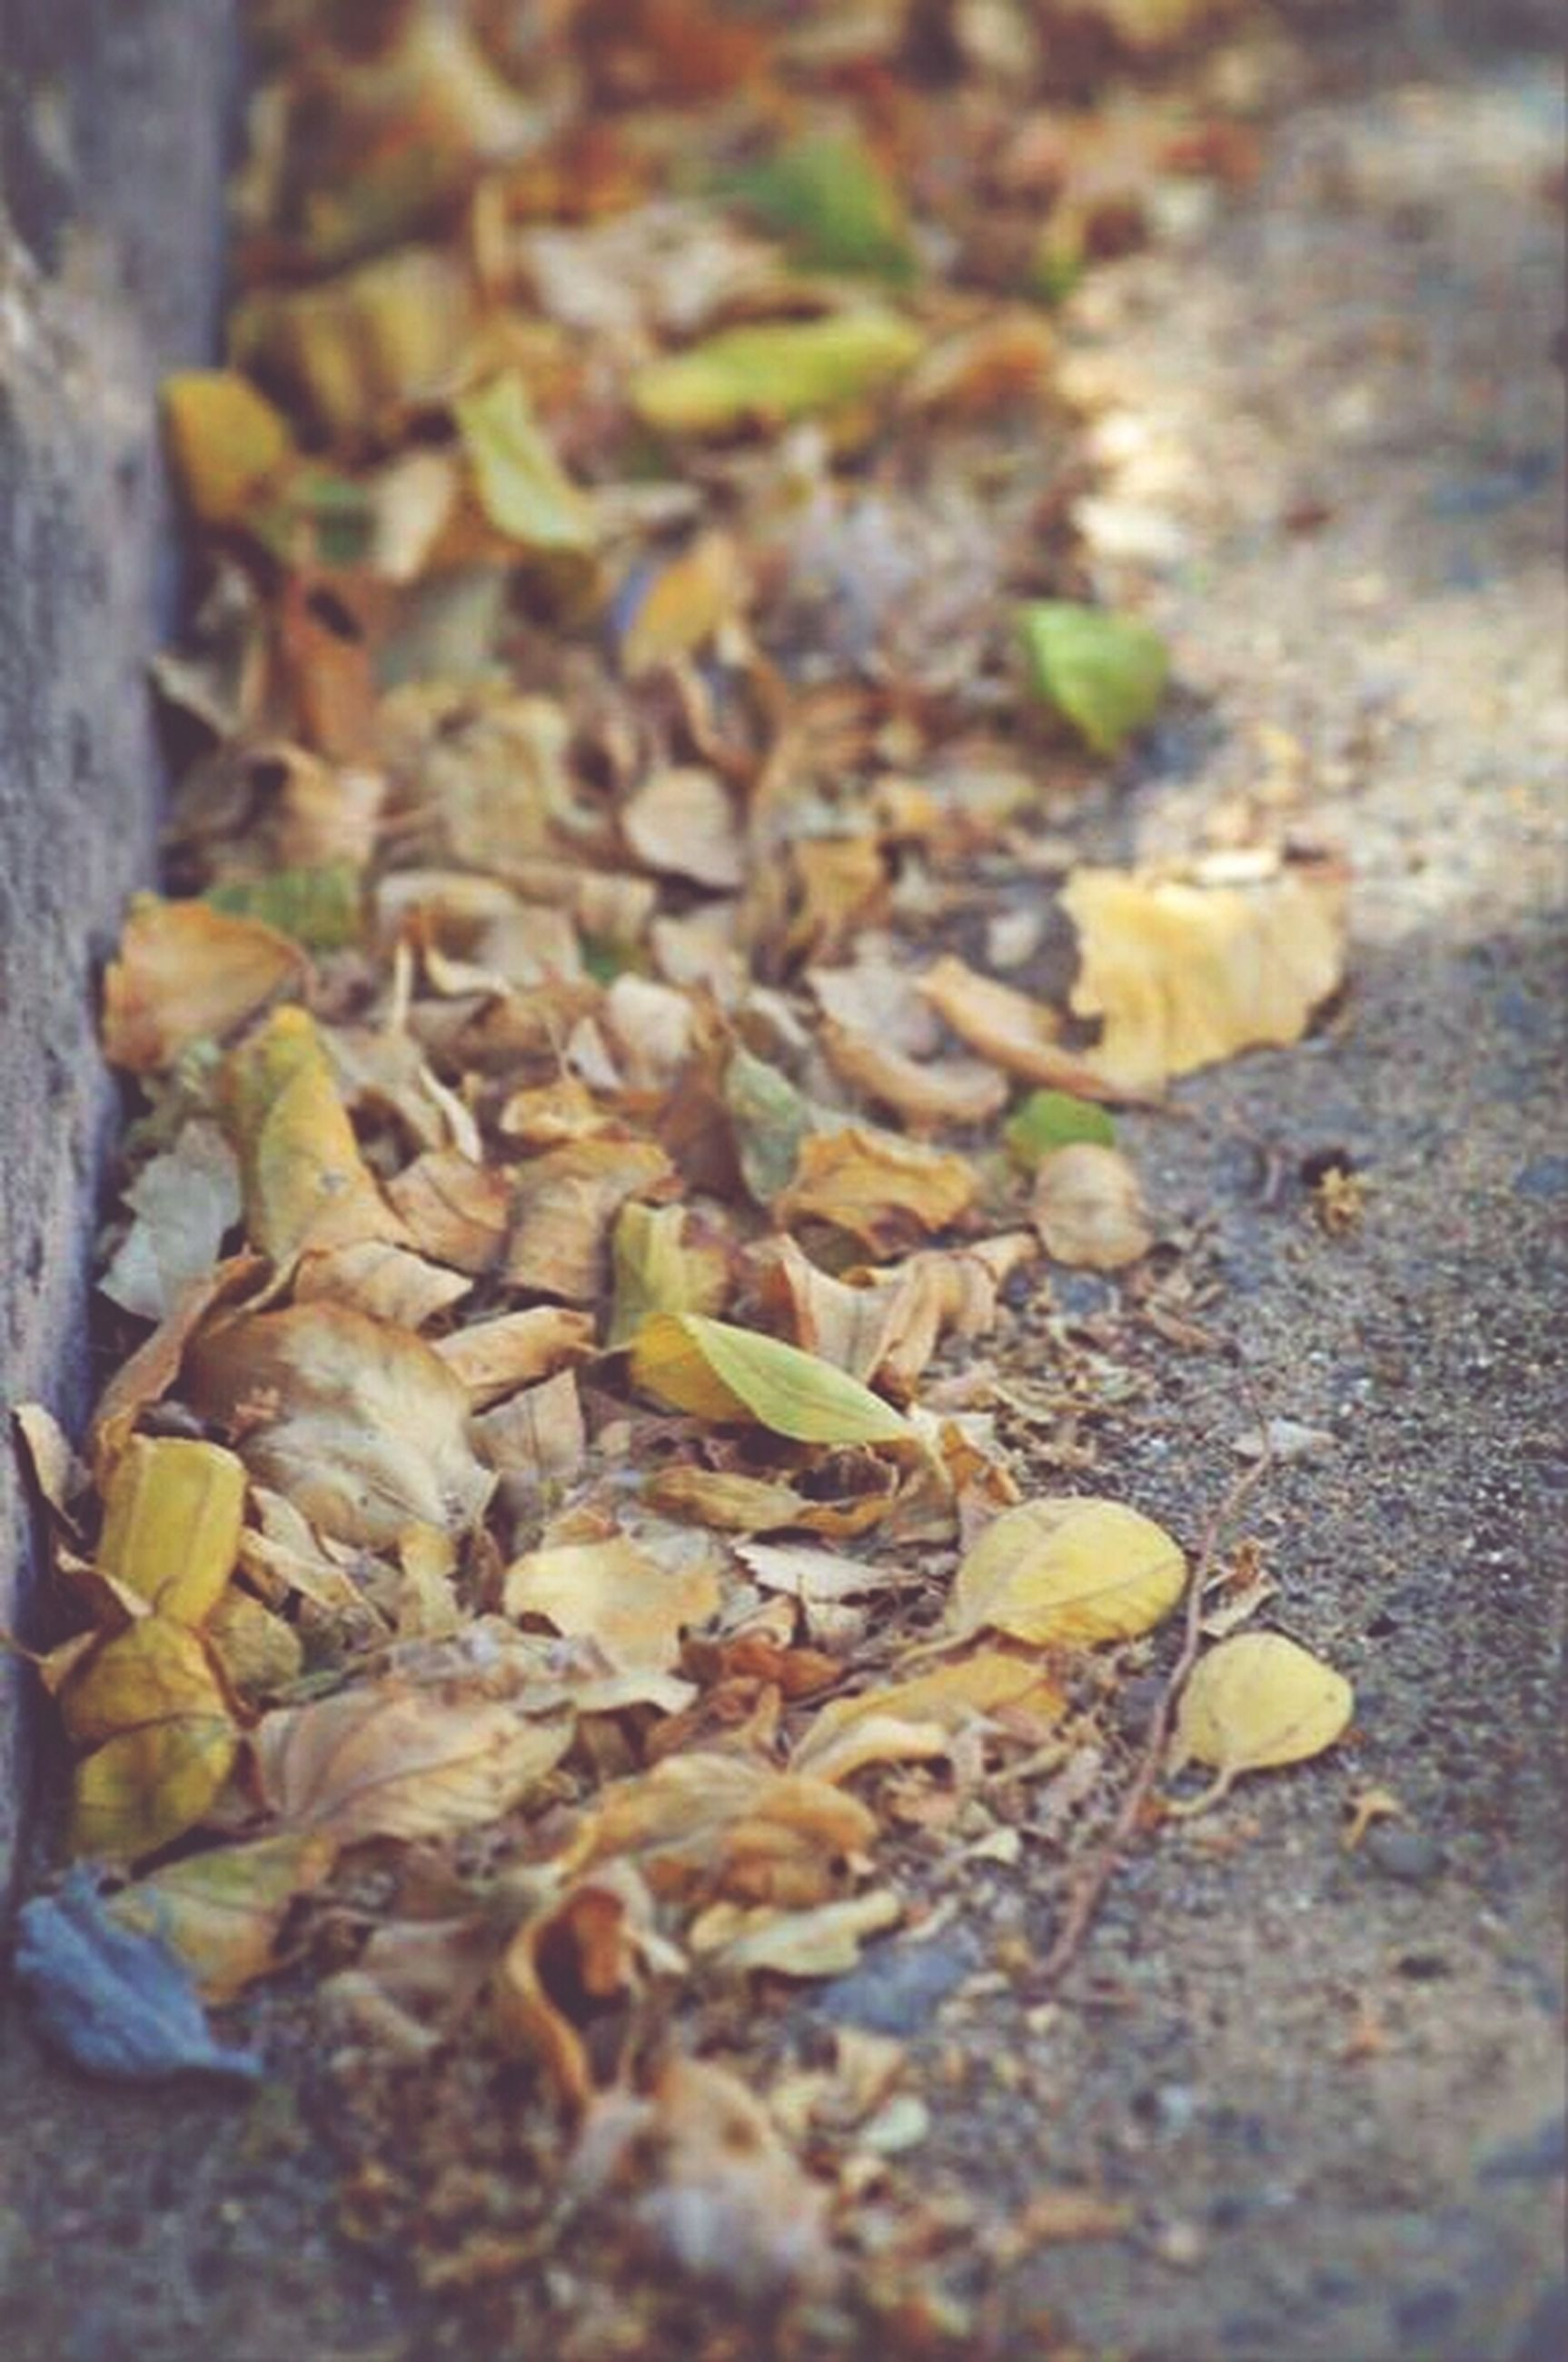 leaf, dry, nature, selective focus, high angle view, close-up, ground, fallen, fragility, day, outdoors, leaves, autumn, surface level, no people, field, growth, sunlight, street, plant